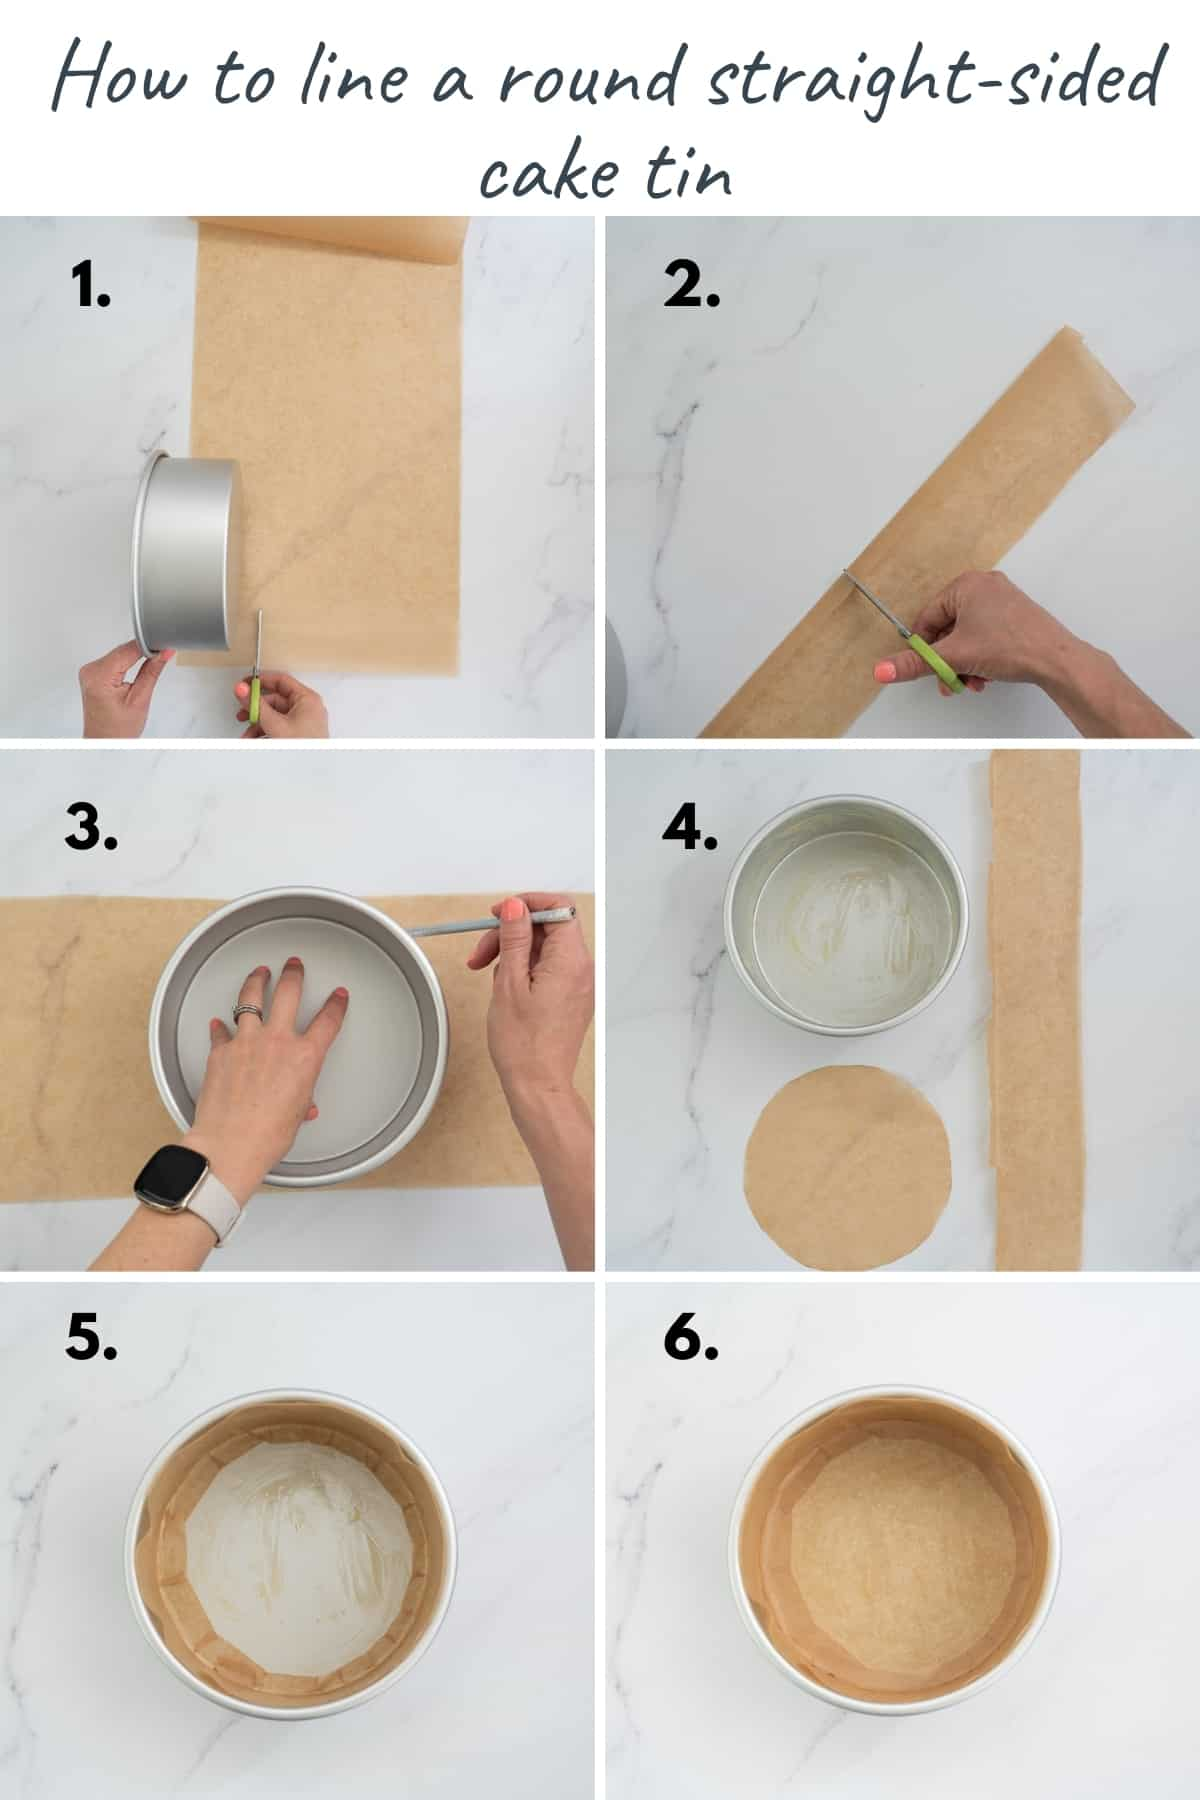 6 photo collage showing the steps to lining a round straight sided cake tin